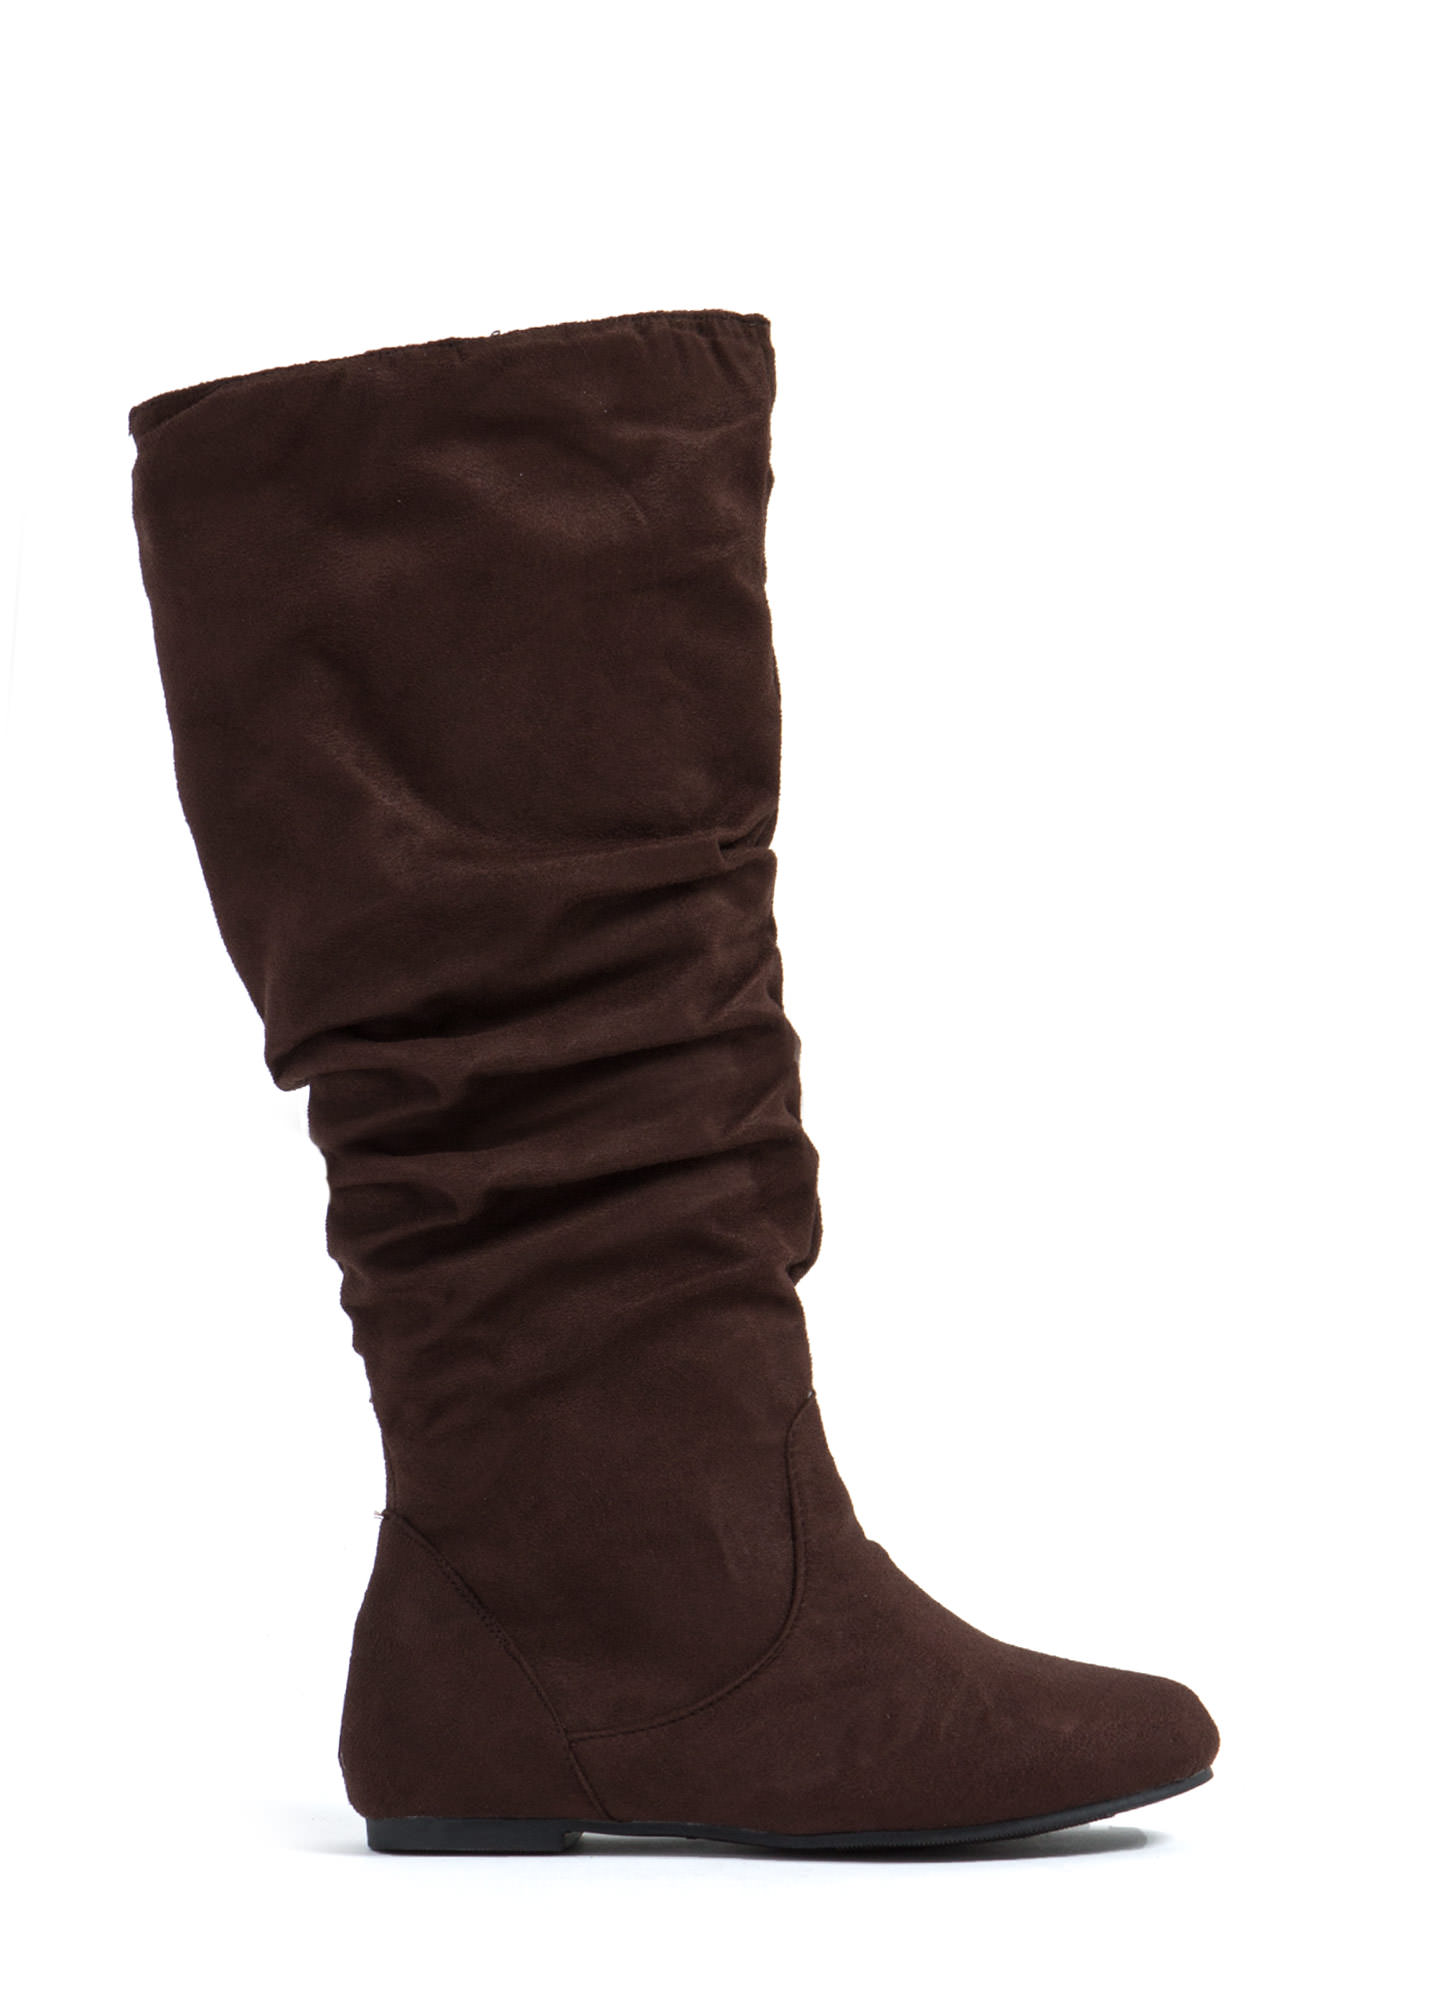 Basic Babe Faux Suede Boots BROWN